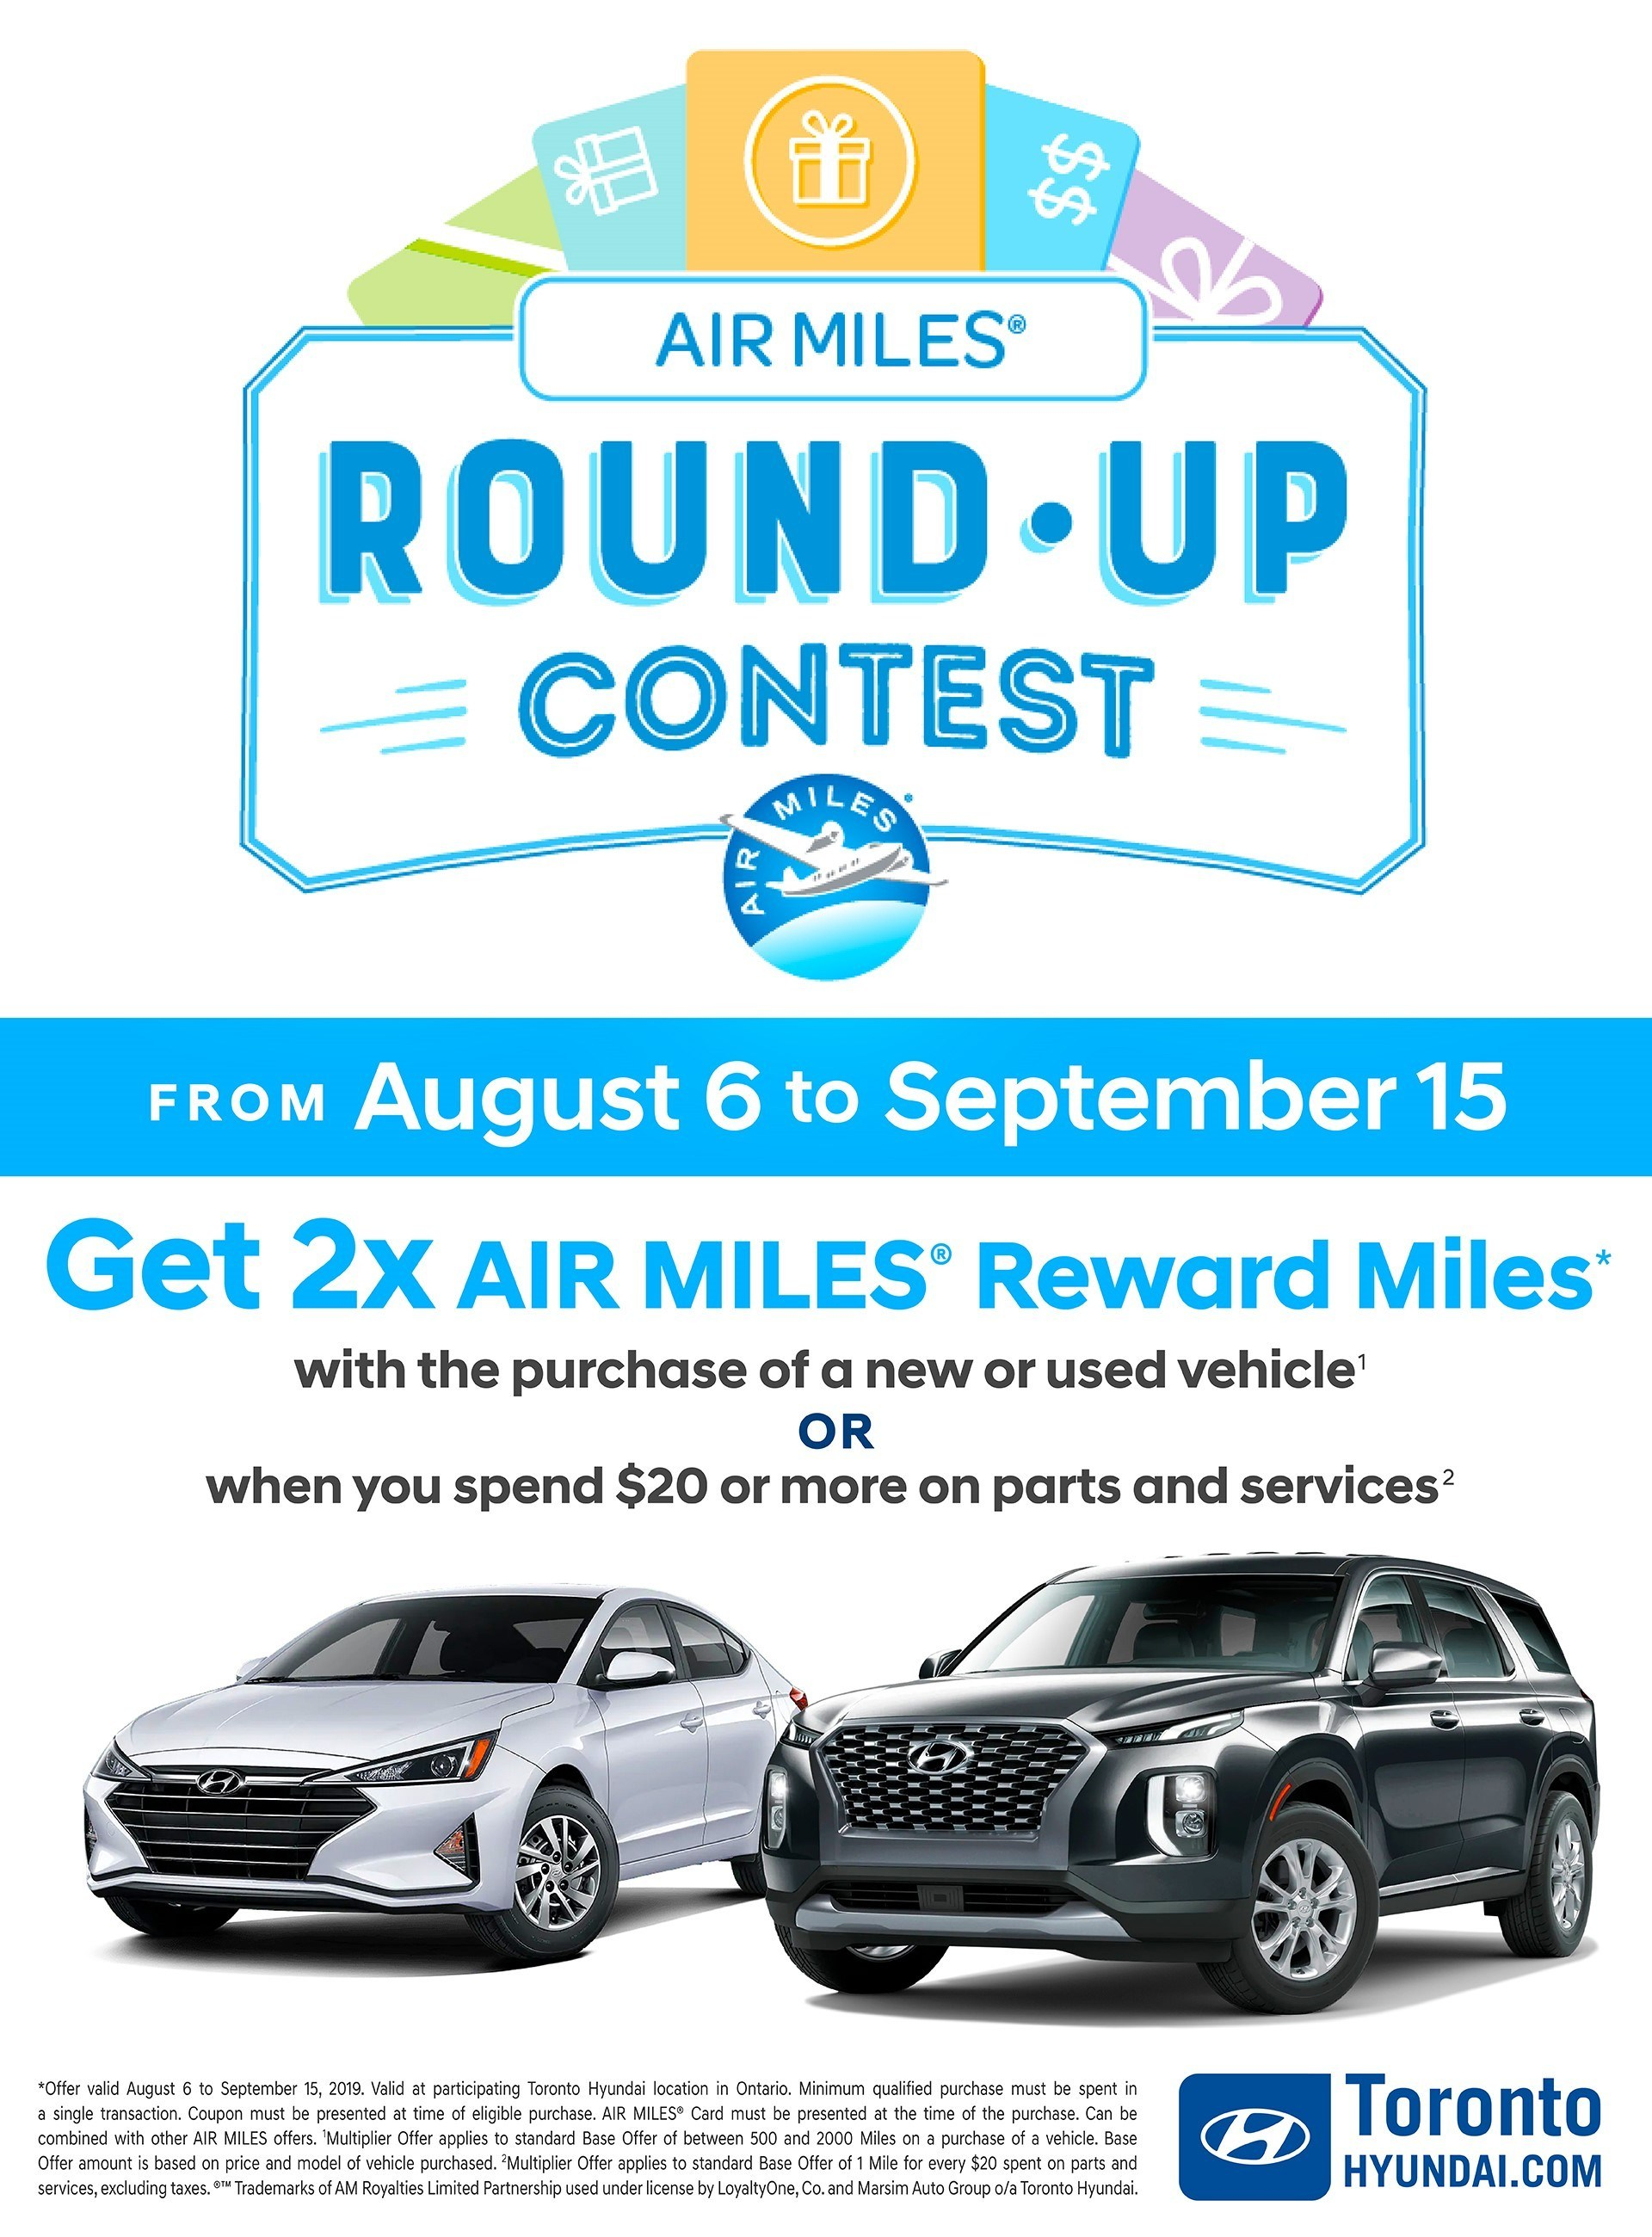 Air miles round up landing page